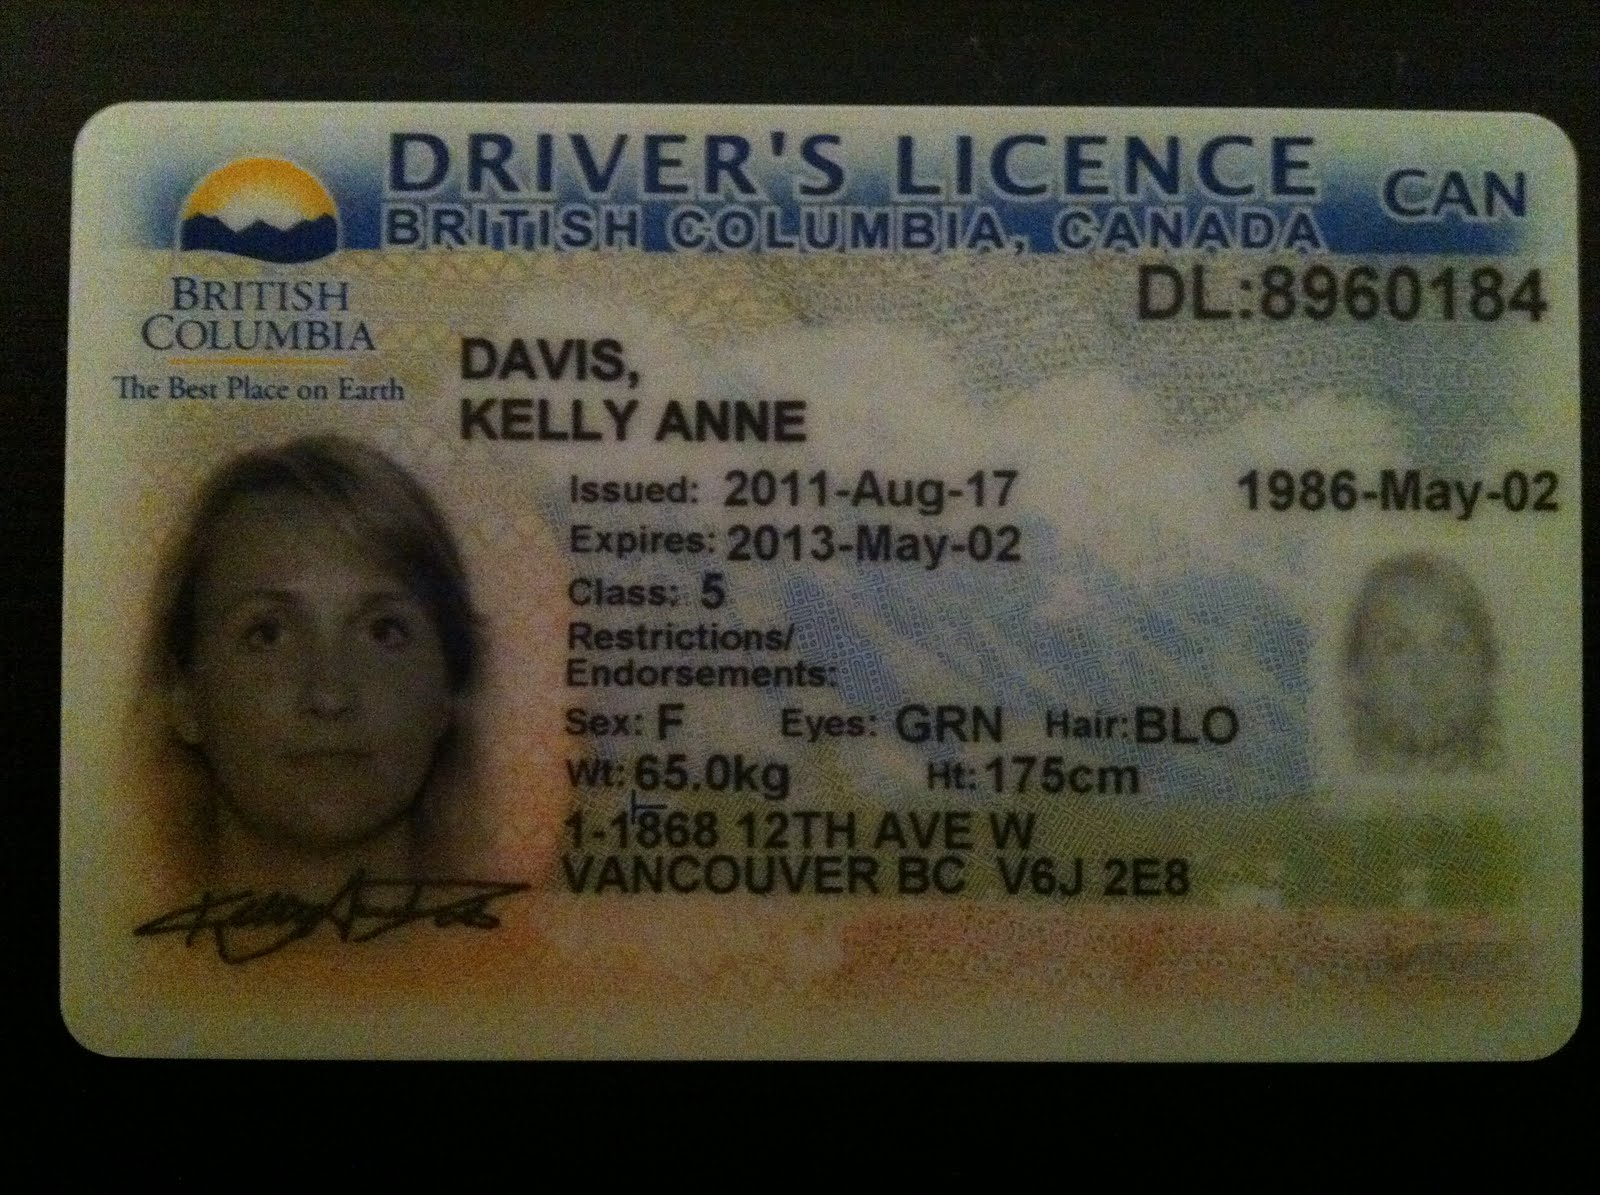 Driver License Endorsement and Restriction Codes